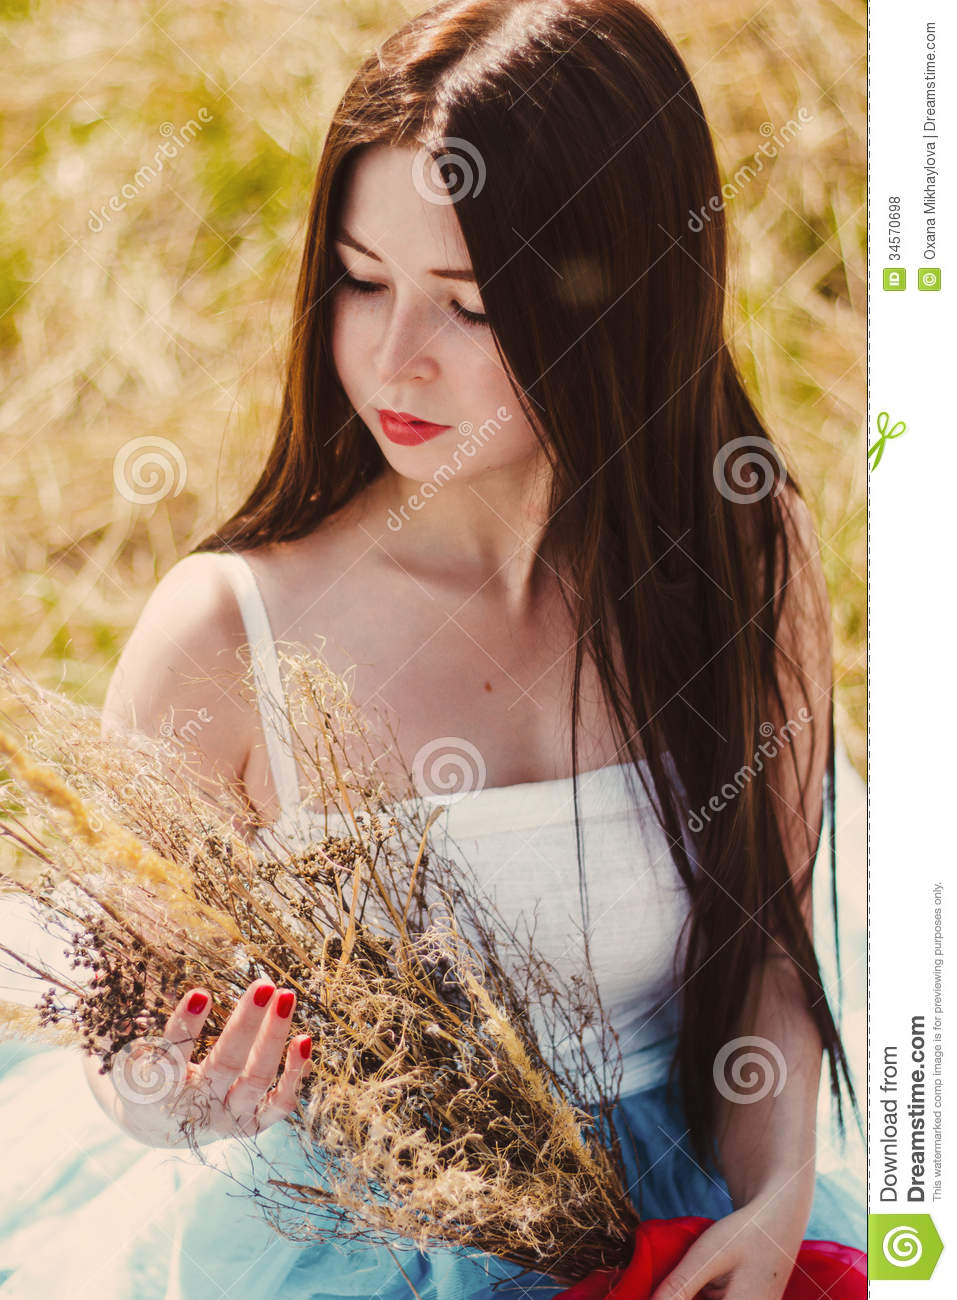 Beautiful Girl In Blue Dress With Red Nails Royalty Free Stock Photos Image 34570698